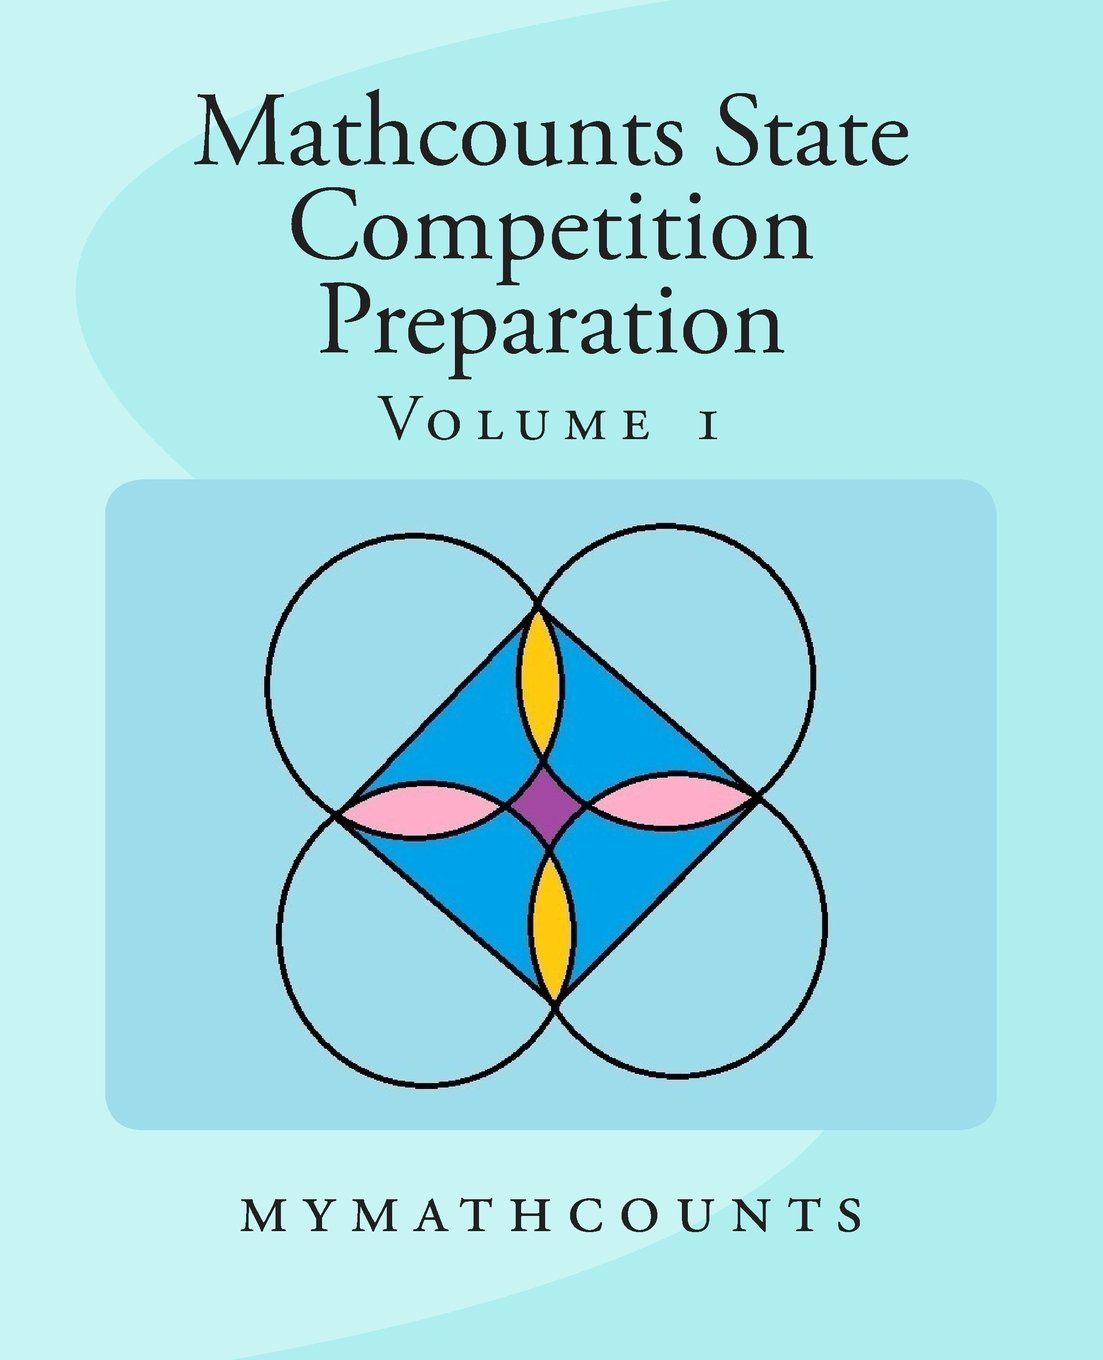 Printables Mathcounts Worksheets mathcounts worksheets for school kaessey amazon com state competition preparation volume 1